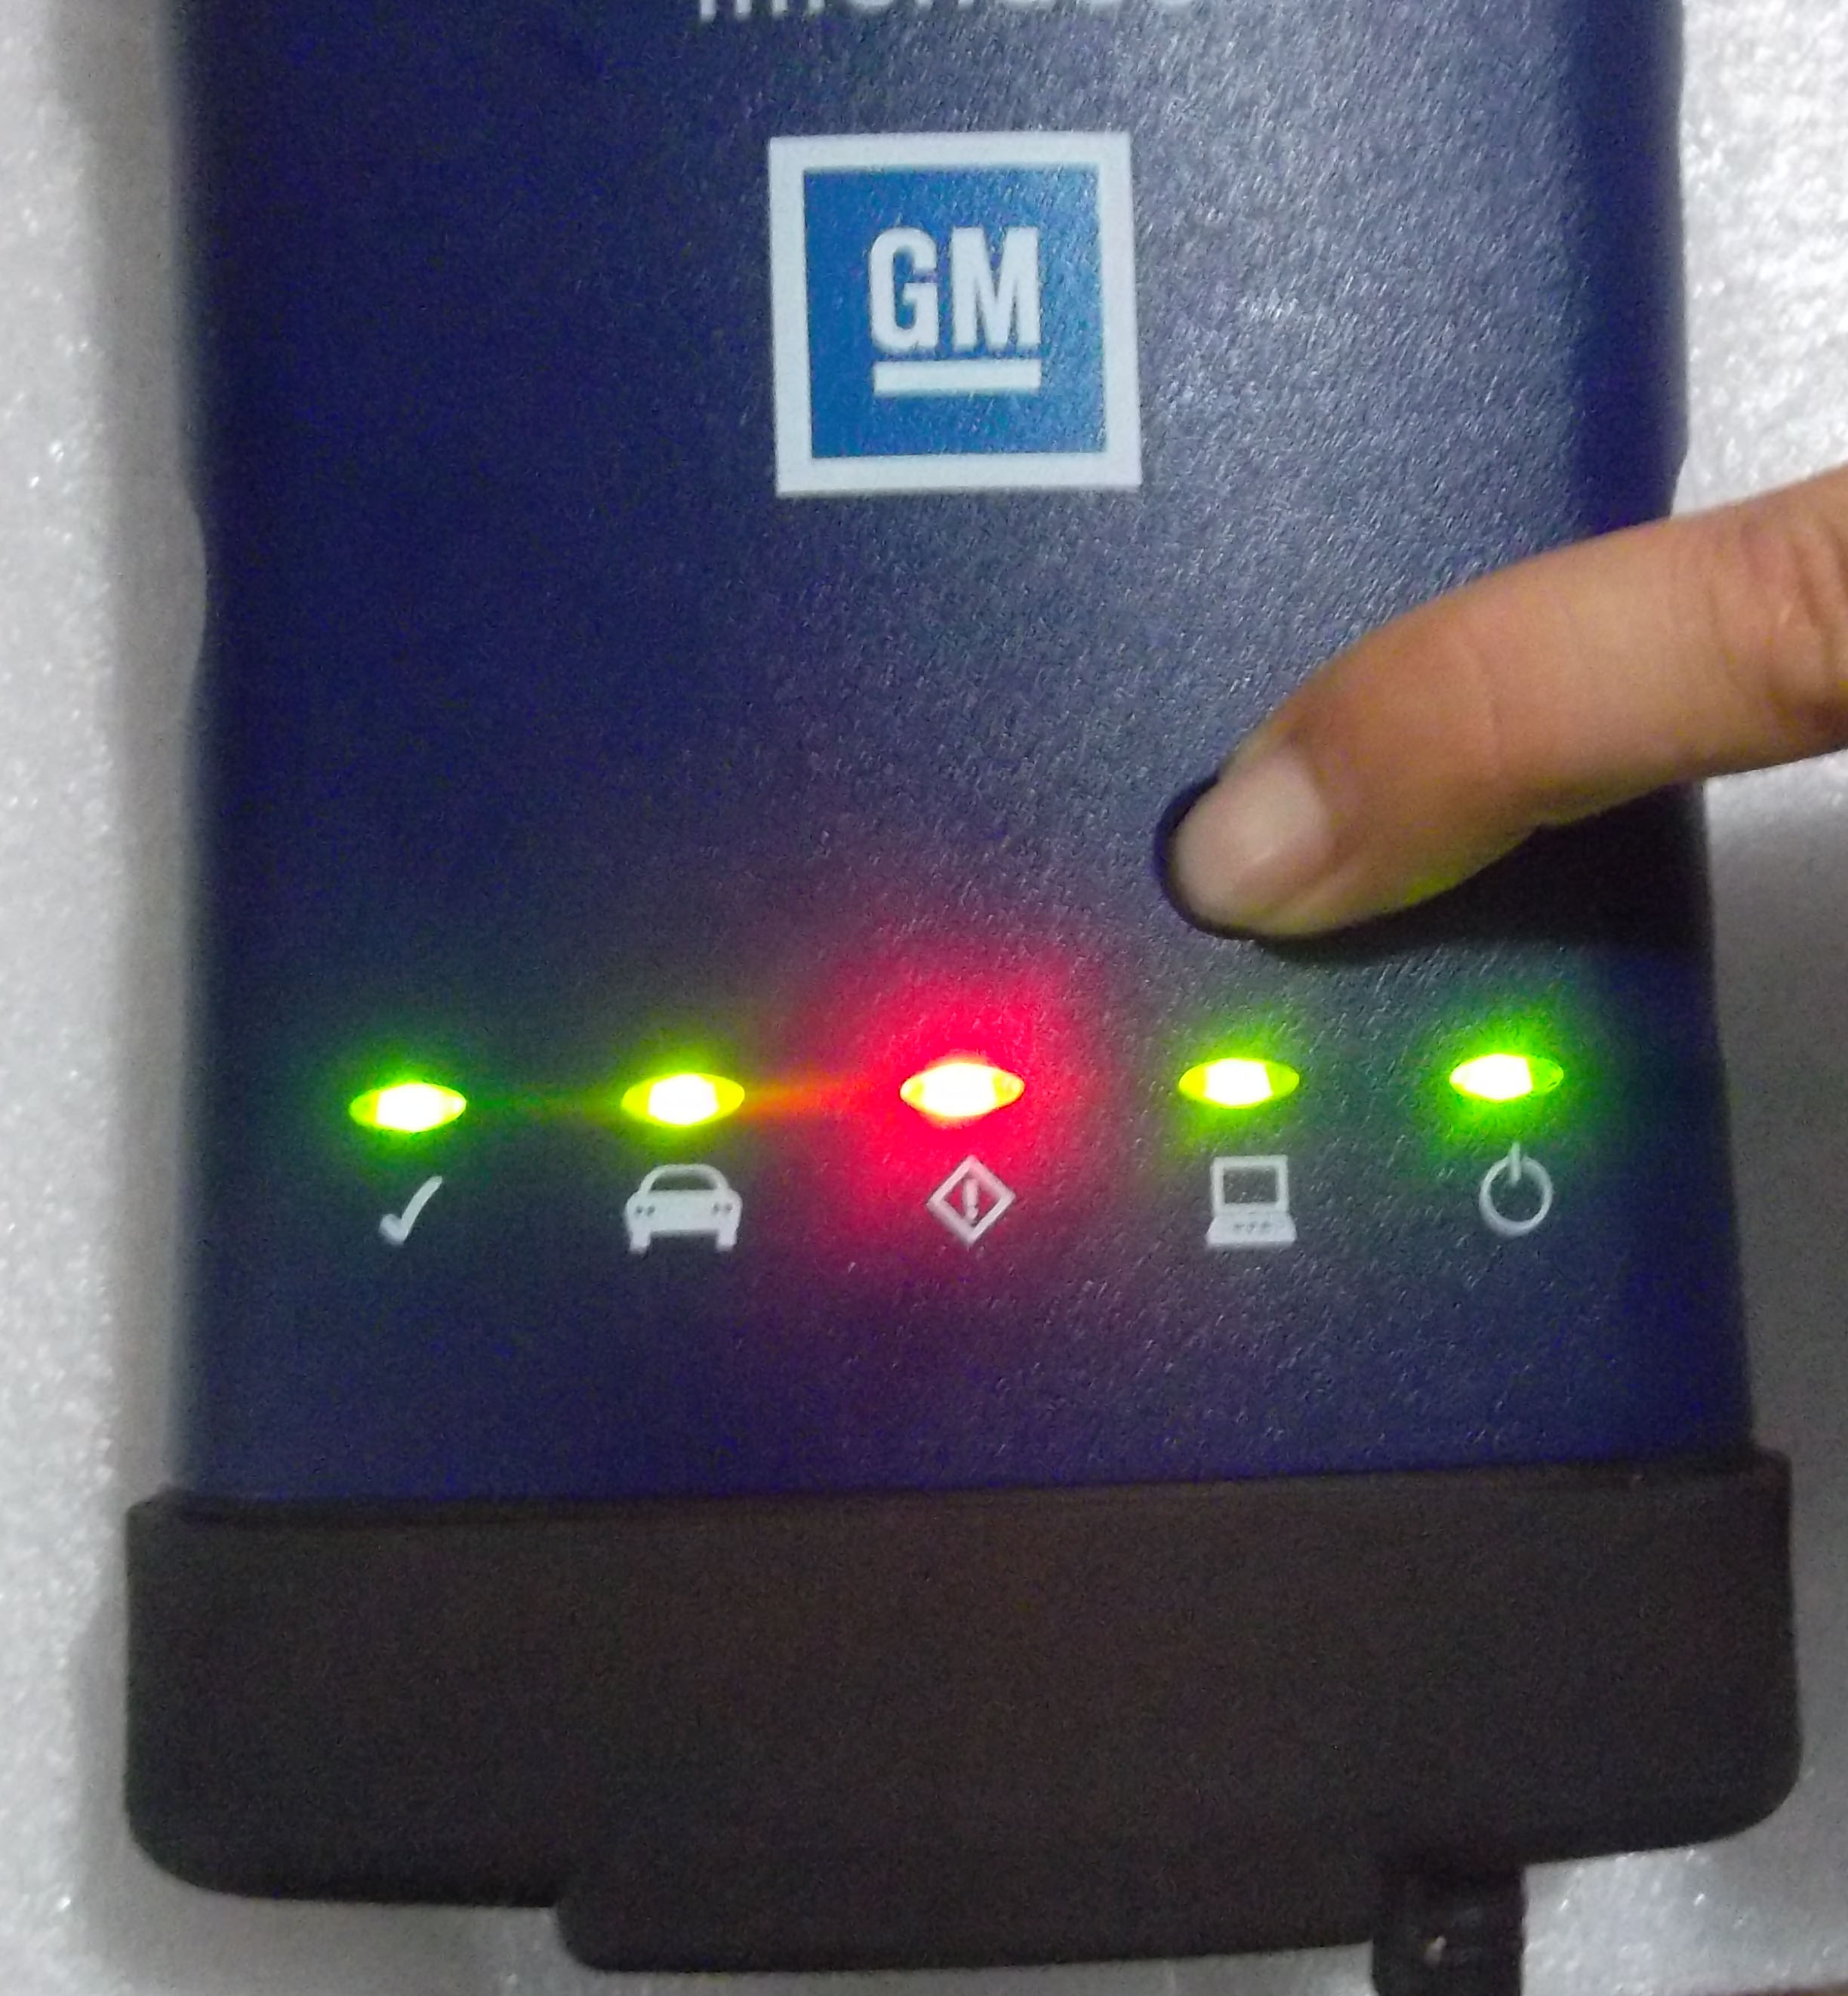 gm mdi gds wifi install user manual rh cardiagtool co uk MDI vs GM Tech2 gm mdi 2 user guide